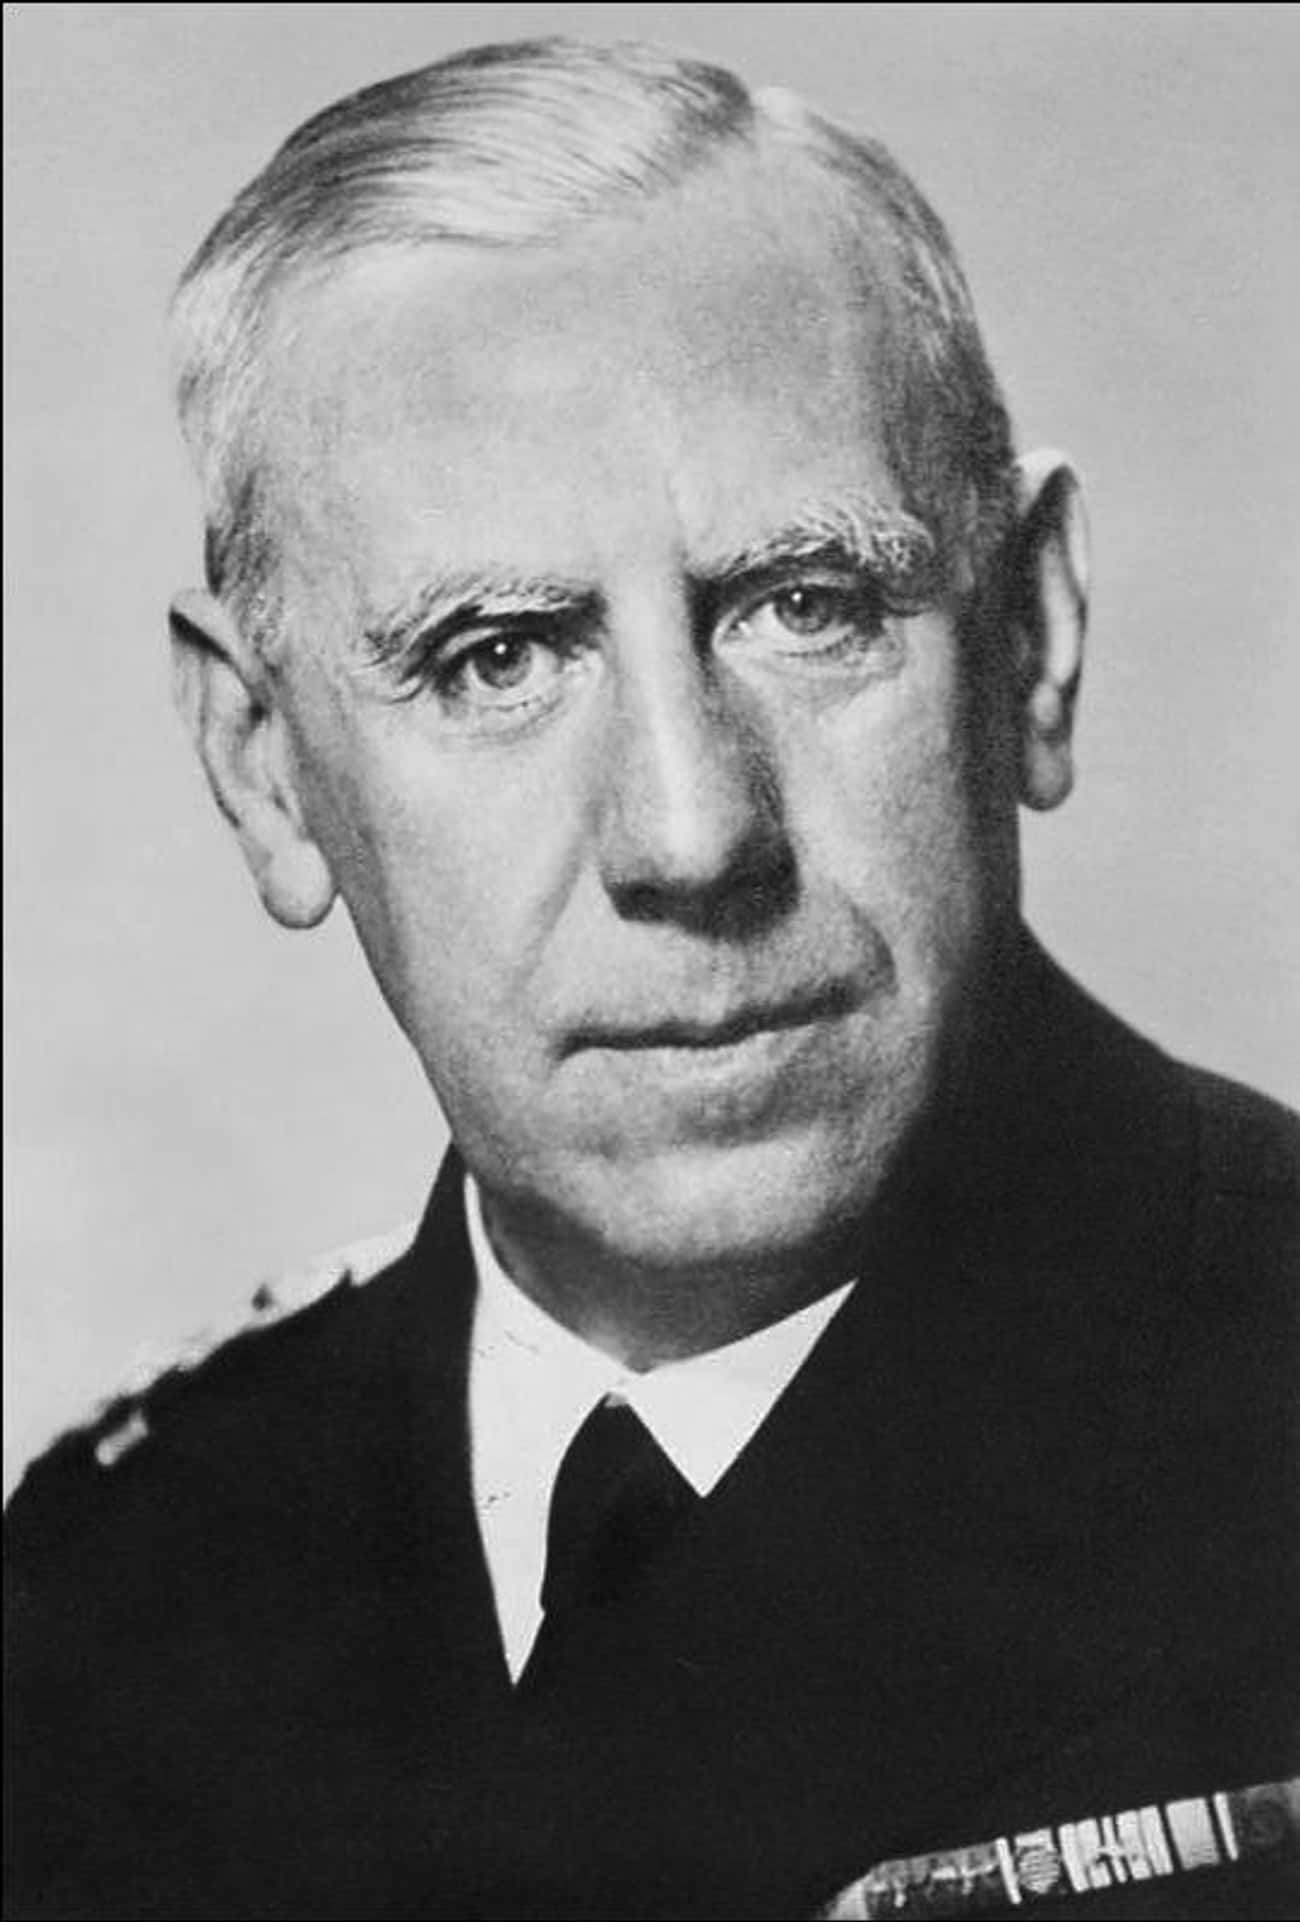 Wilhelm Canaris Worked to Brin is listed (or ranked) 3 on the list The Most Hardcore WWII Spy Stories You'll Ever Read